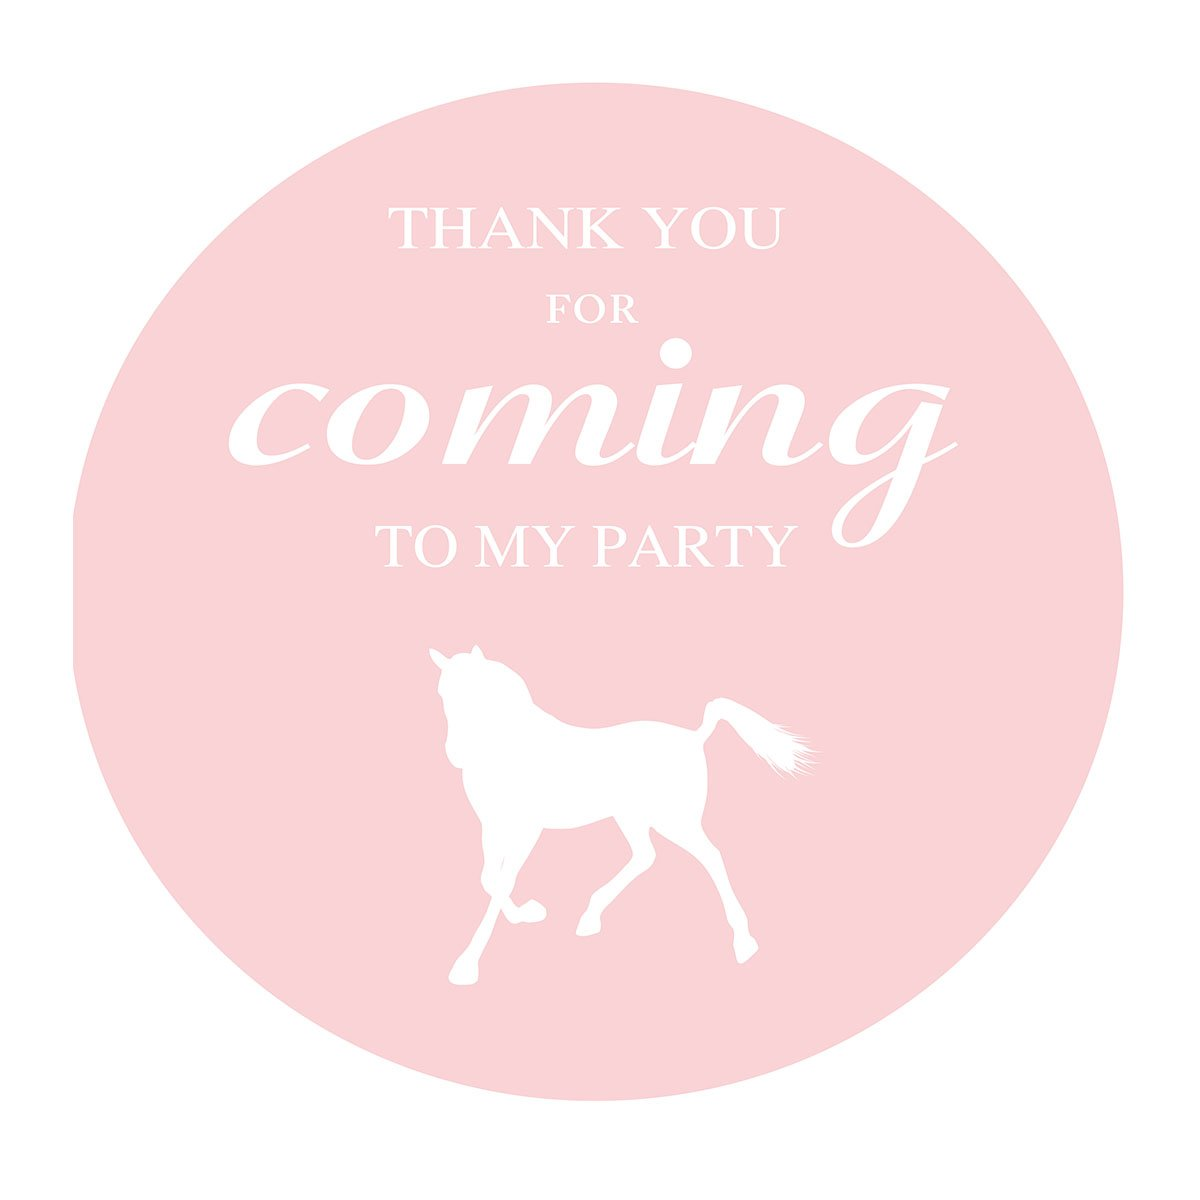 MAGJUCHE Pink Horse Thank You Stickers, Farm Animal, Boy Birthday or Baby Shower Party Supply Labels, 2 Inch, 40-Pack